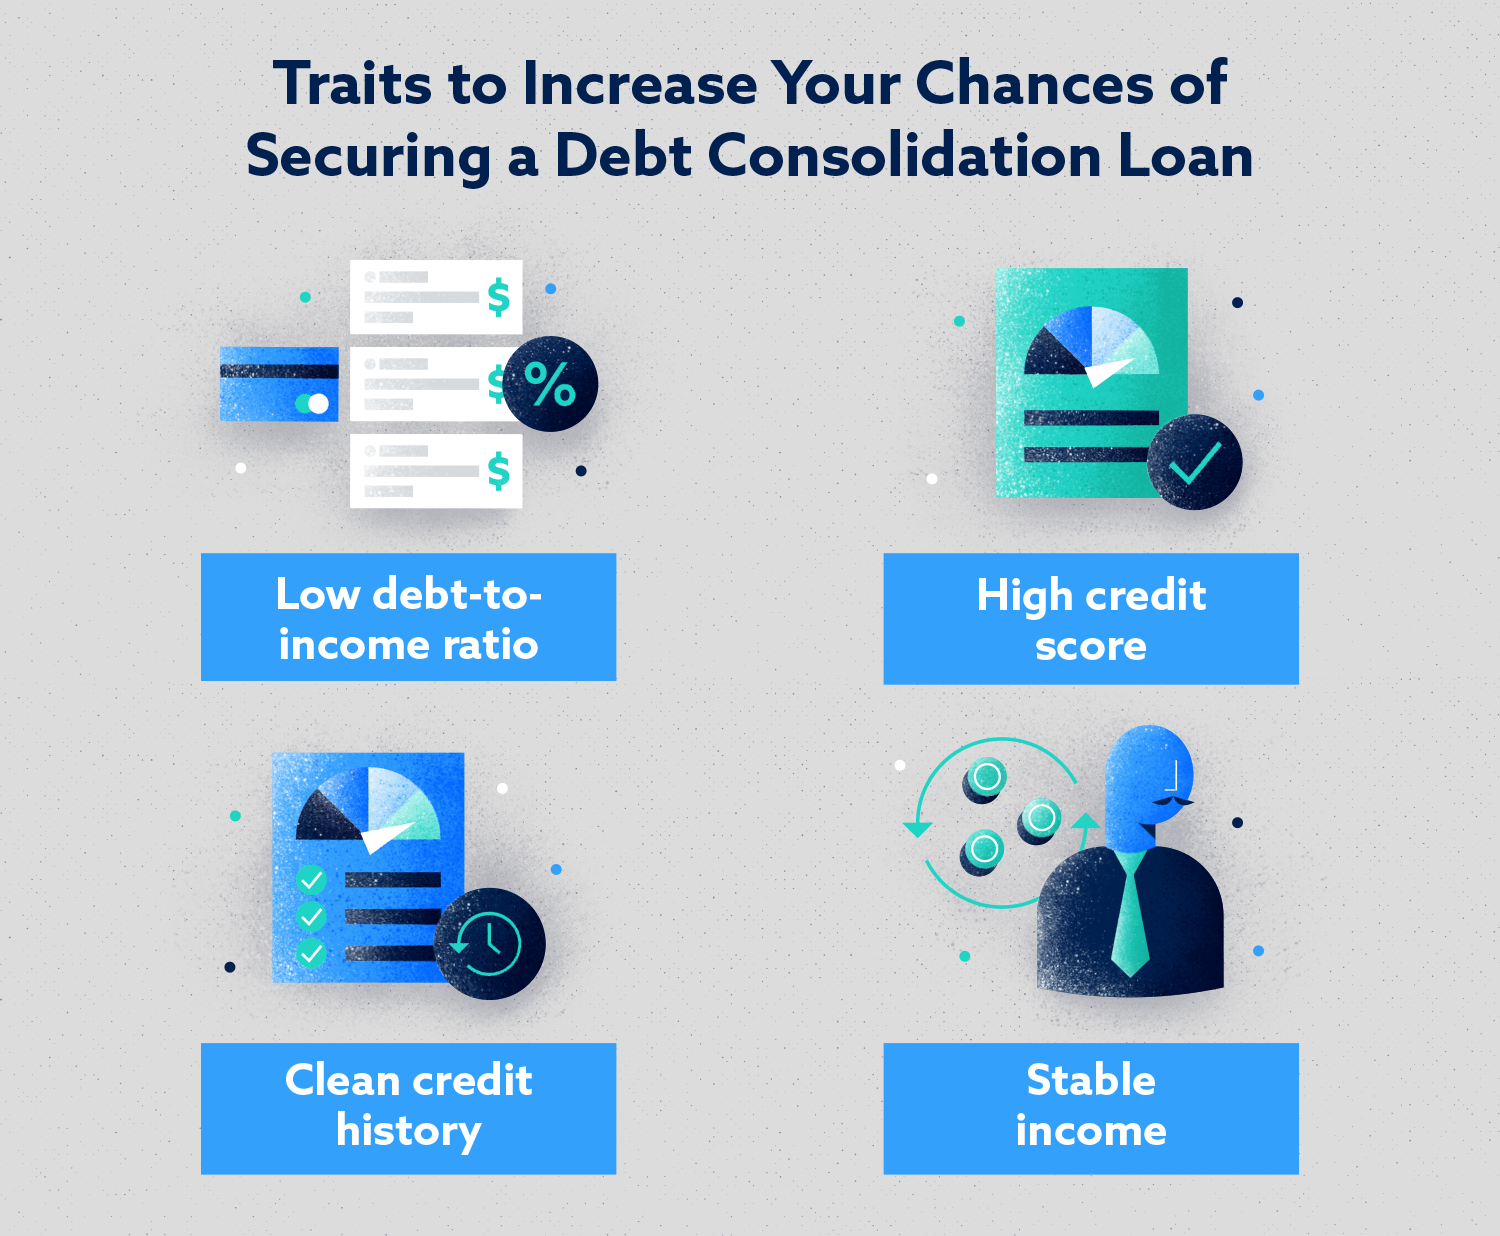 Traits to Increase Your Chances of Securing a Debt Consolidation Loan Image